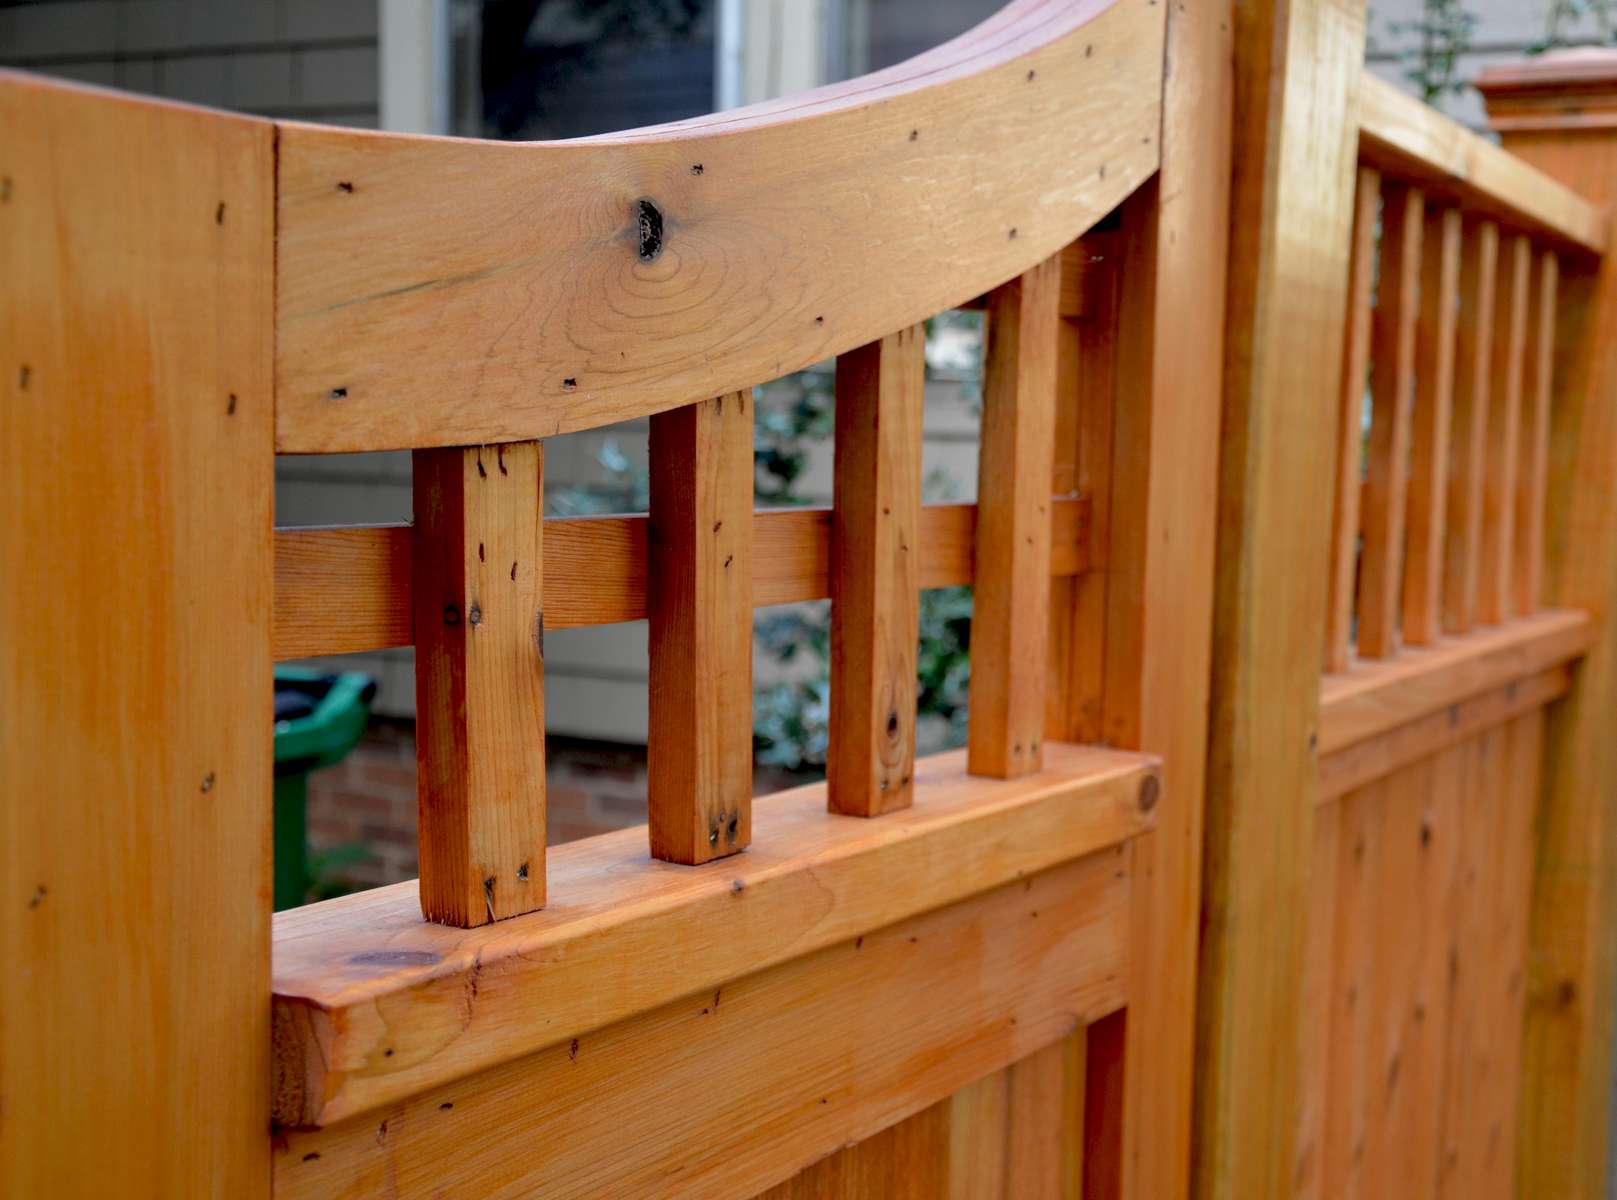 The custom cedar fencing adds to the Asian tone set throughout this design.